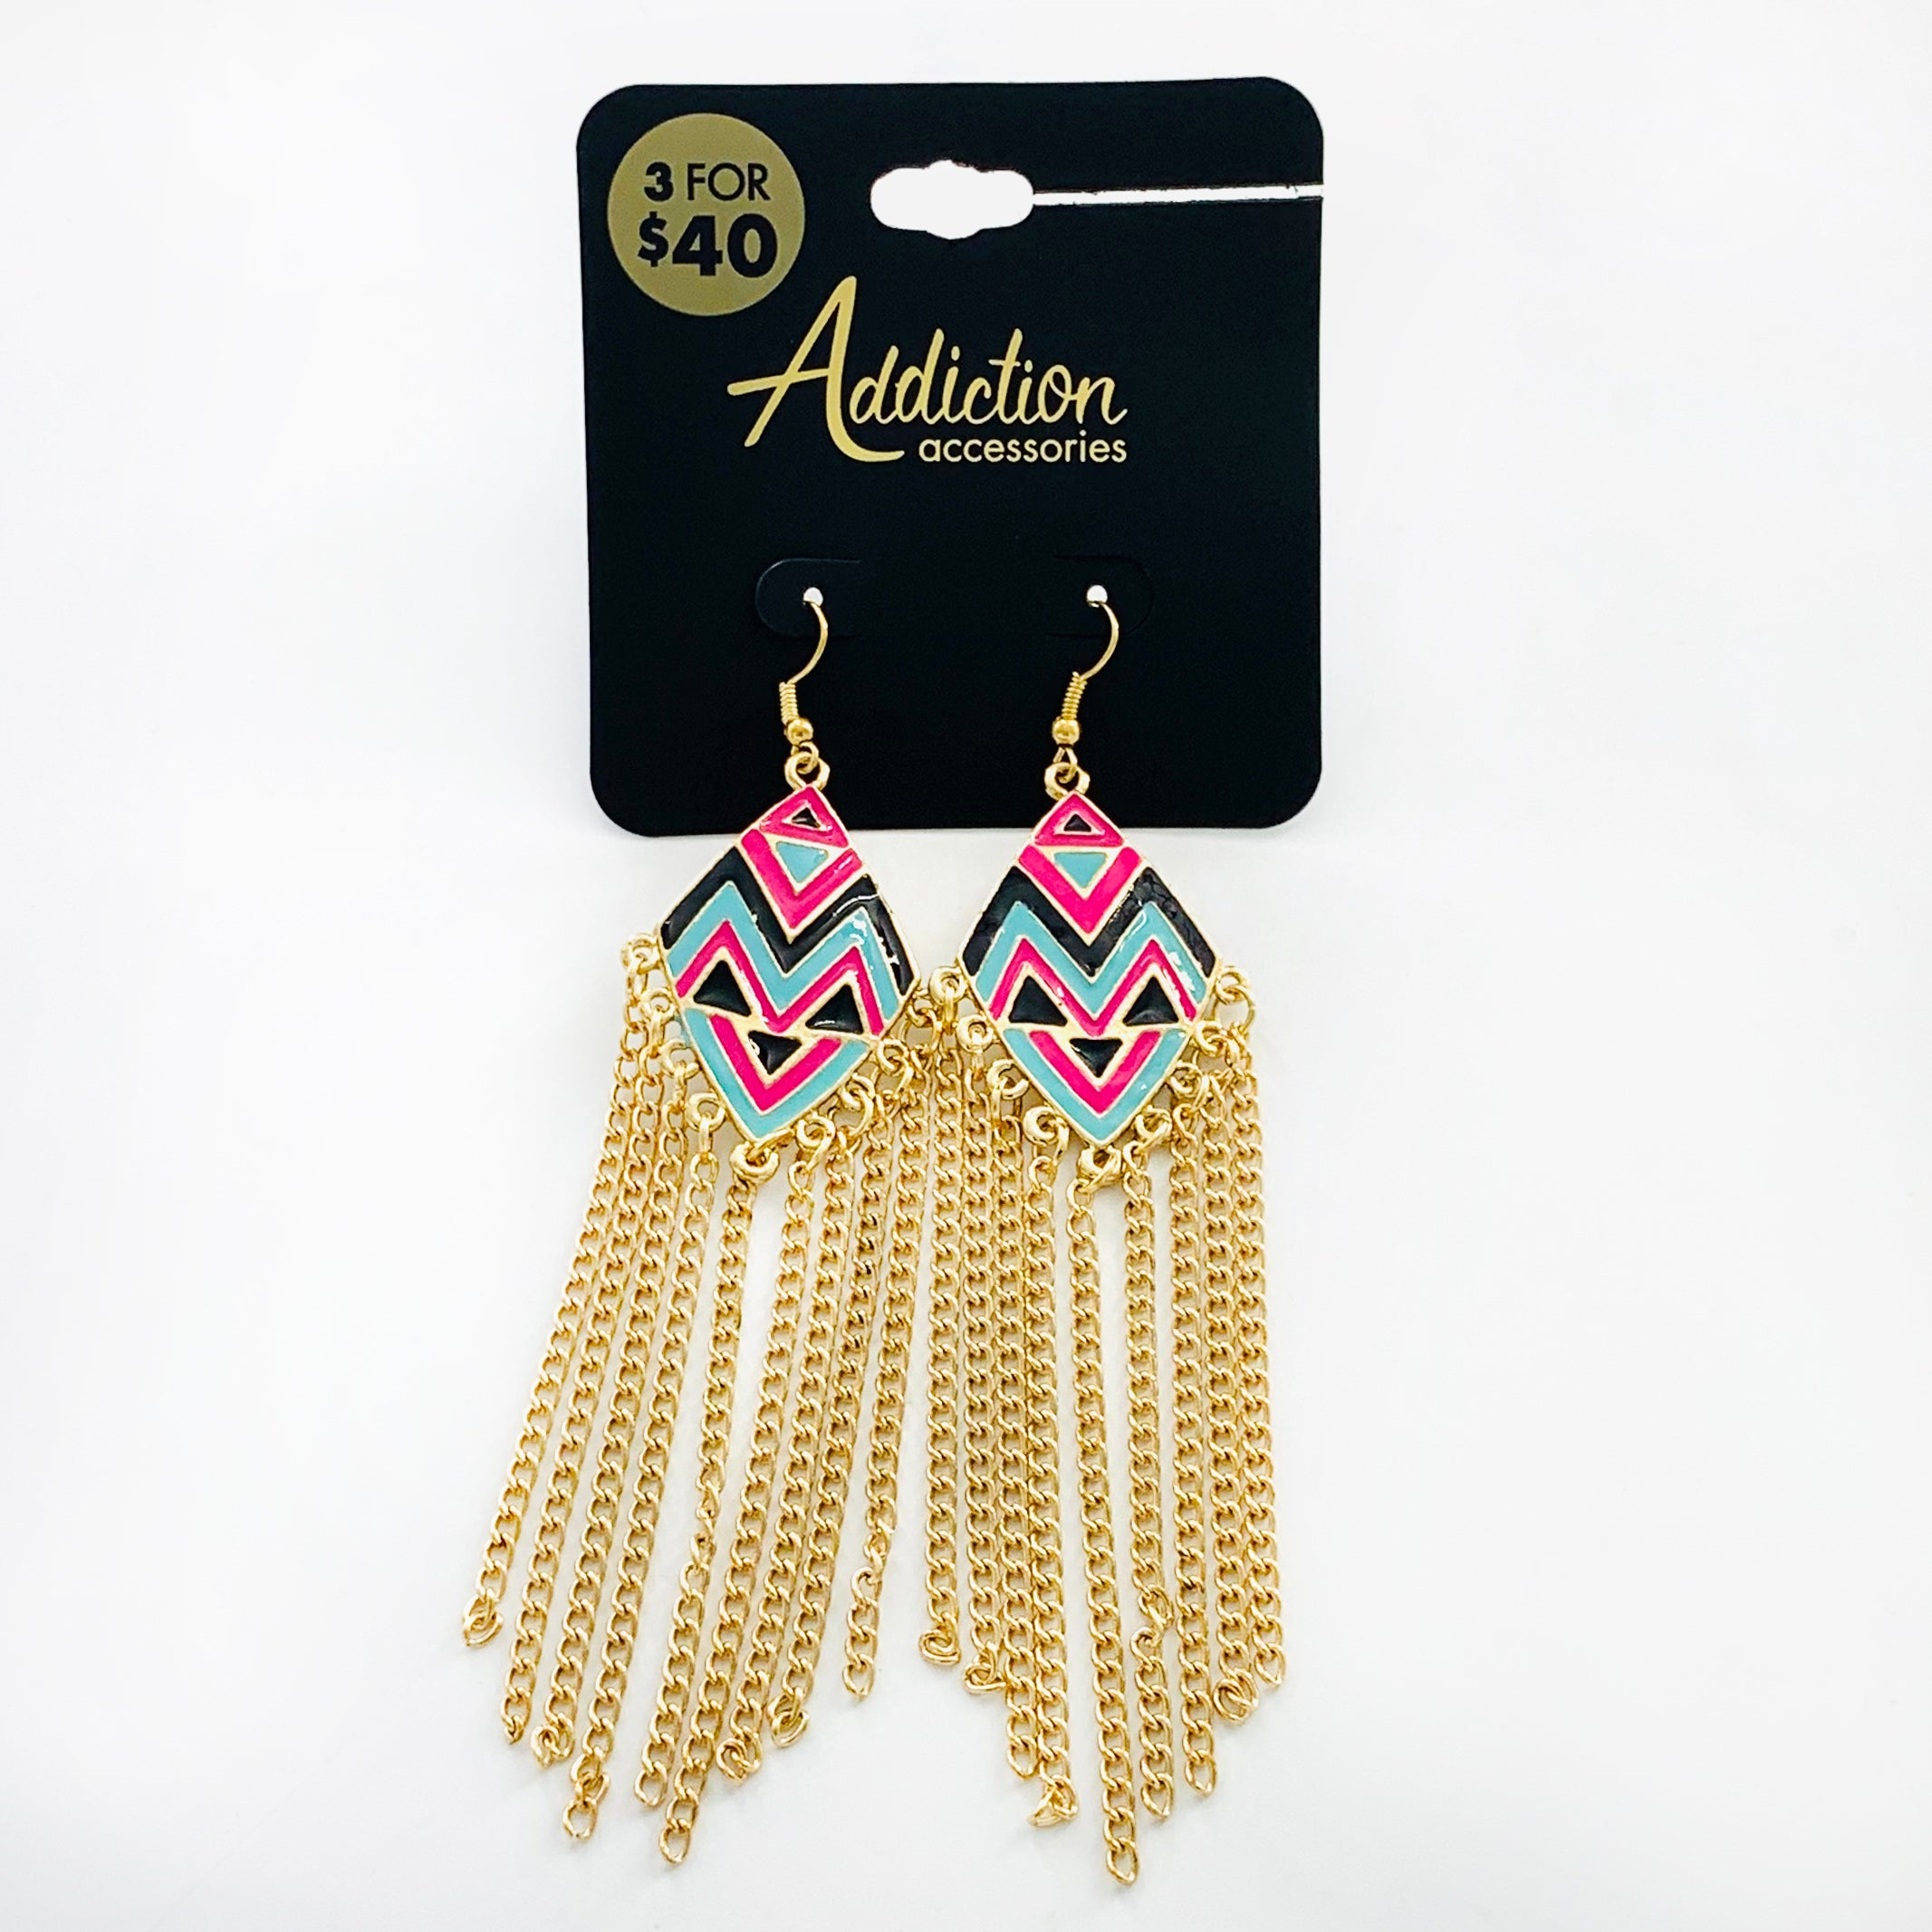 Pink and turquoise aztec patterns with dangling chains